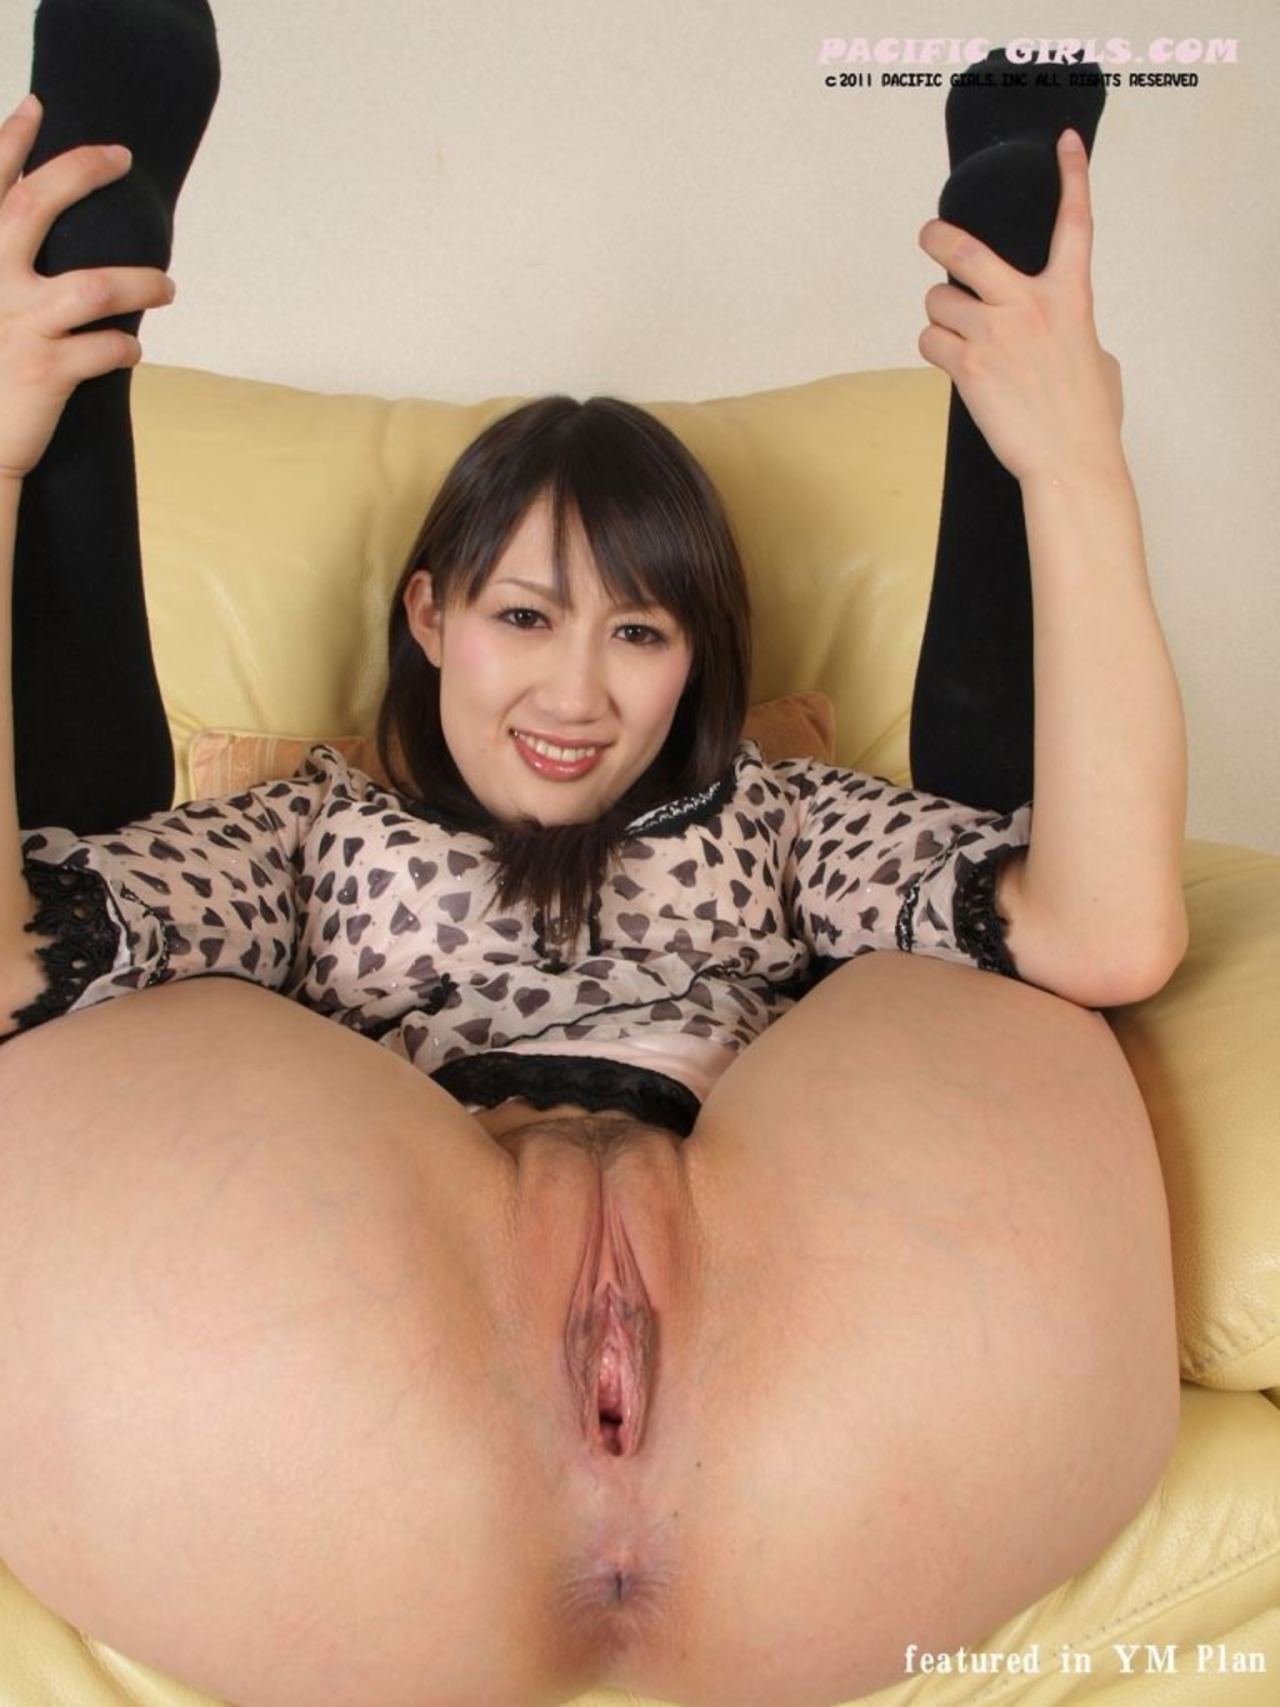 Special Pacific girls with stocking spread pictures